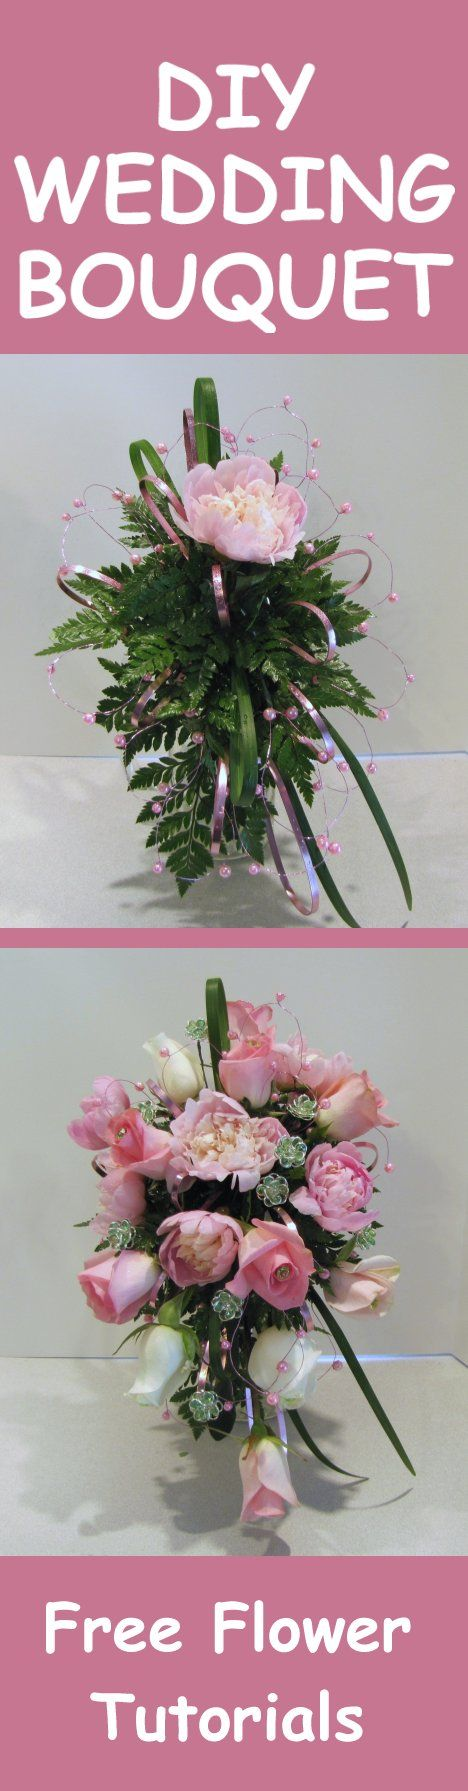 Fresh flower wedding bouquet easy diy flower tutorials learn how fresh flower wedding bouquet easy diy flower tutorials learn how to make bridal bouquets corsages boutonnieres reception table centerpieces an izmirmasajfo